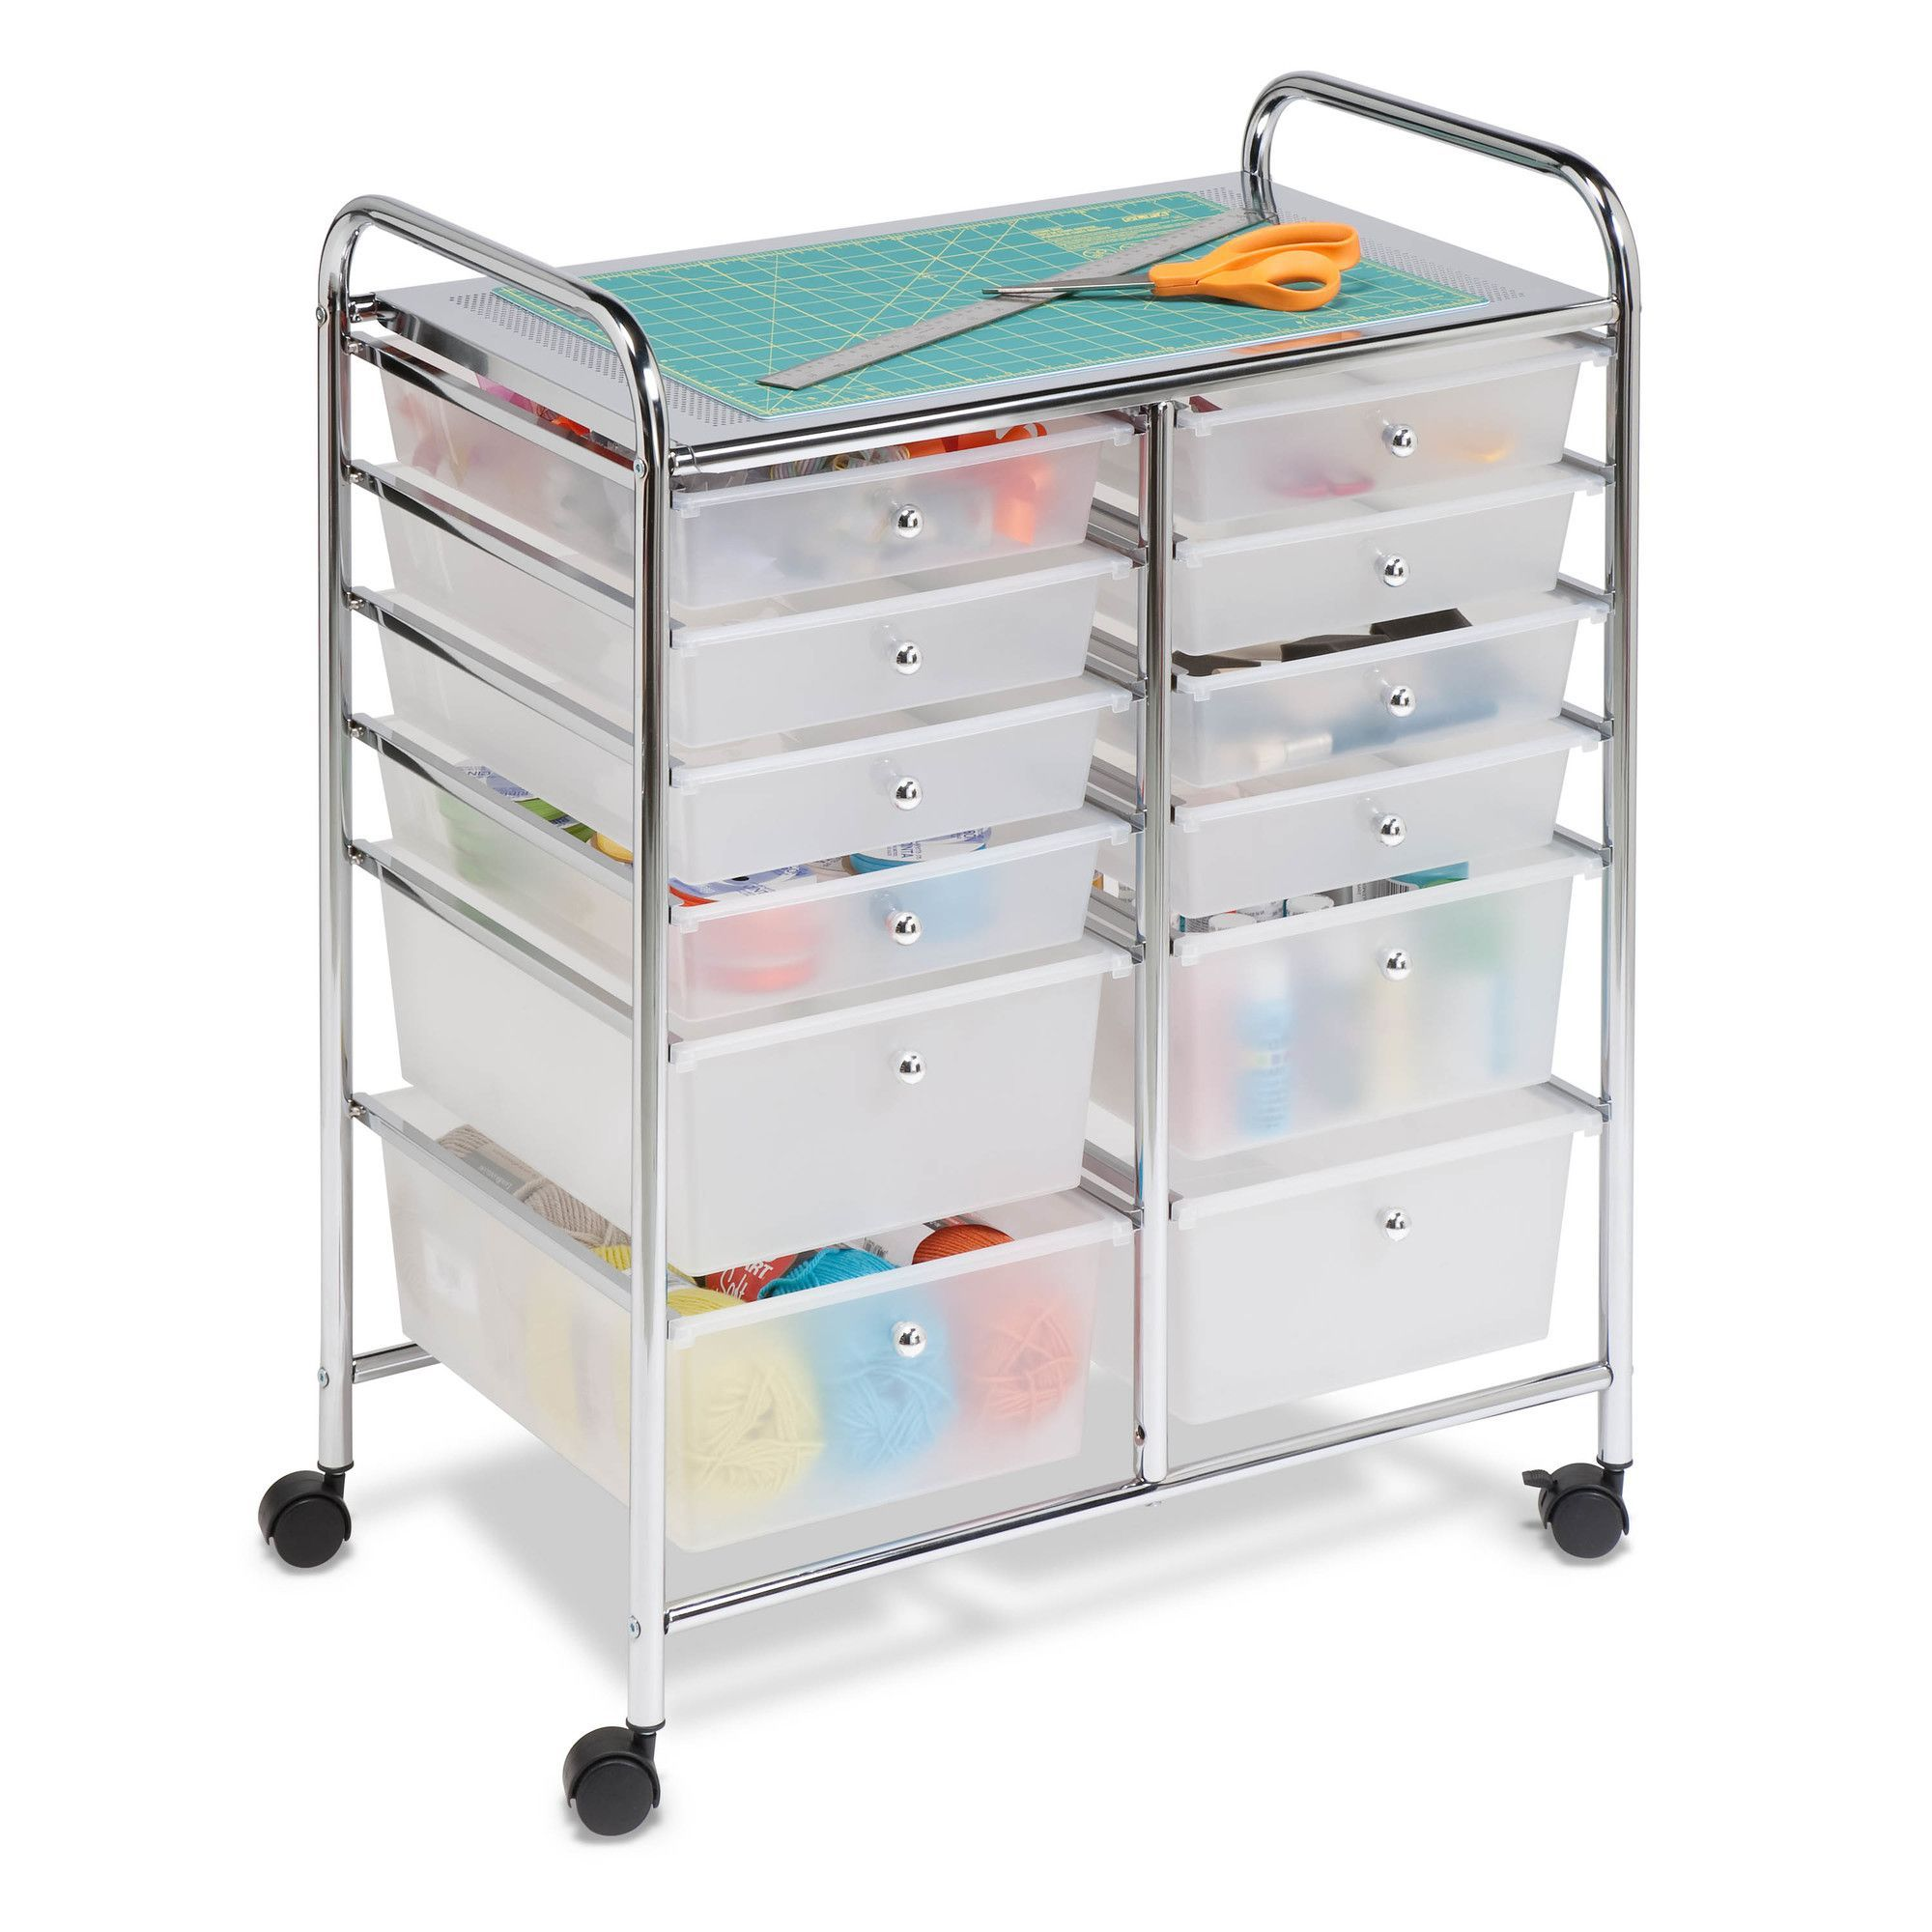 bobs bits item organiser boxes unit fabric drawer specifics collapsible itm containers organizer drawers storage box